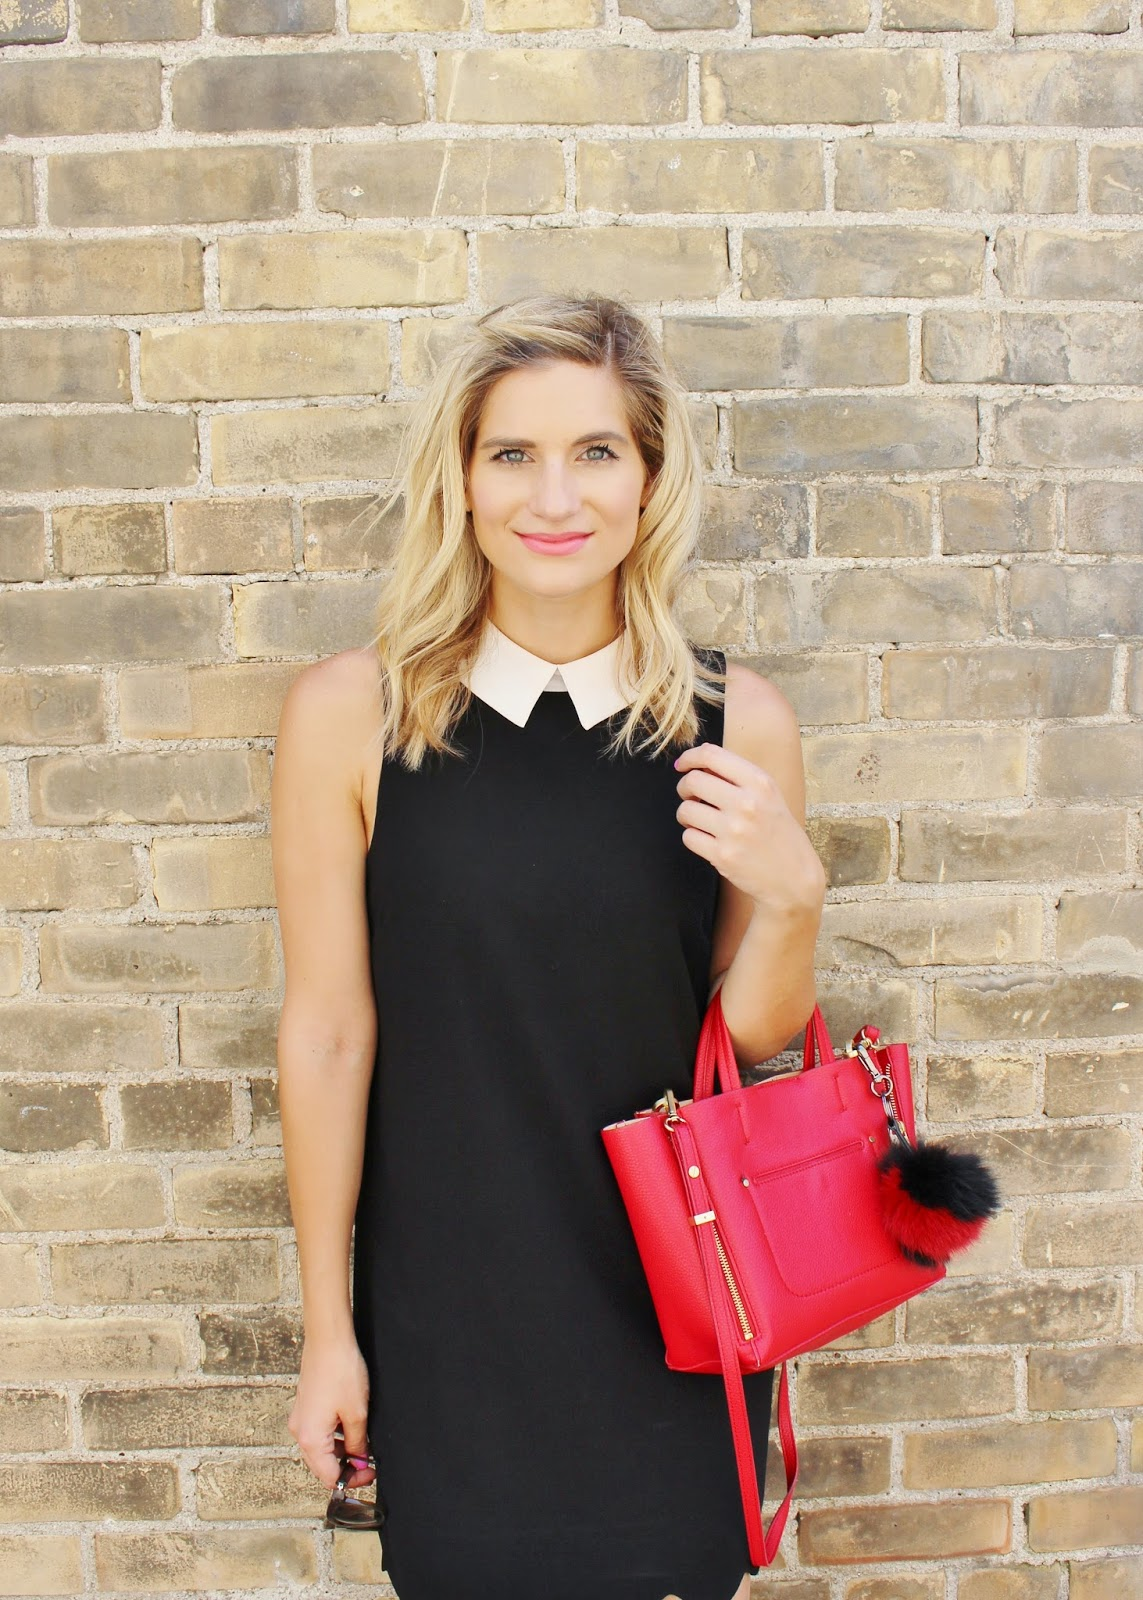 Bijuleni- Preppy peter pan collar black dress, red Ann Taylor tote with pom pom